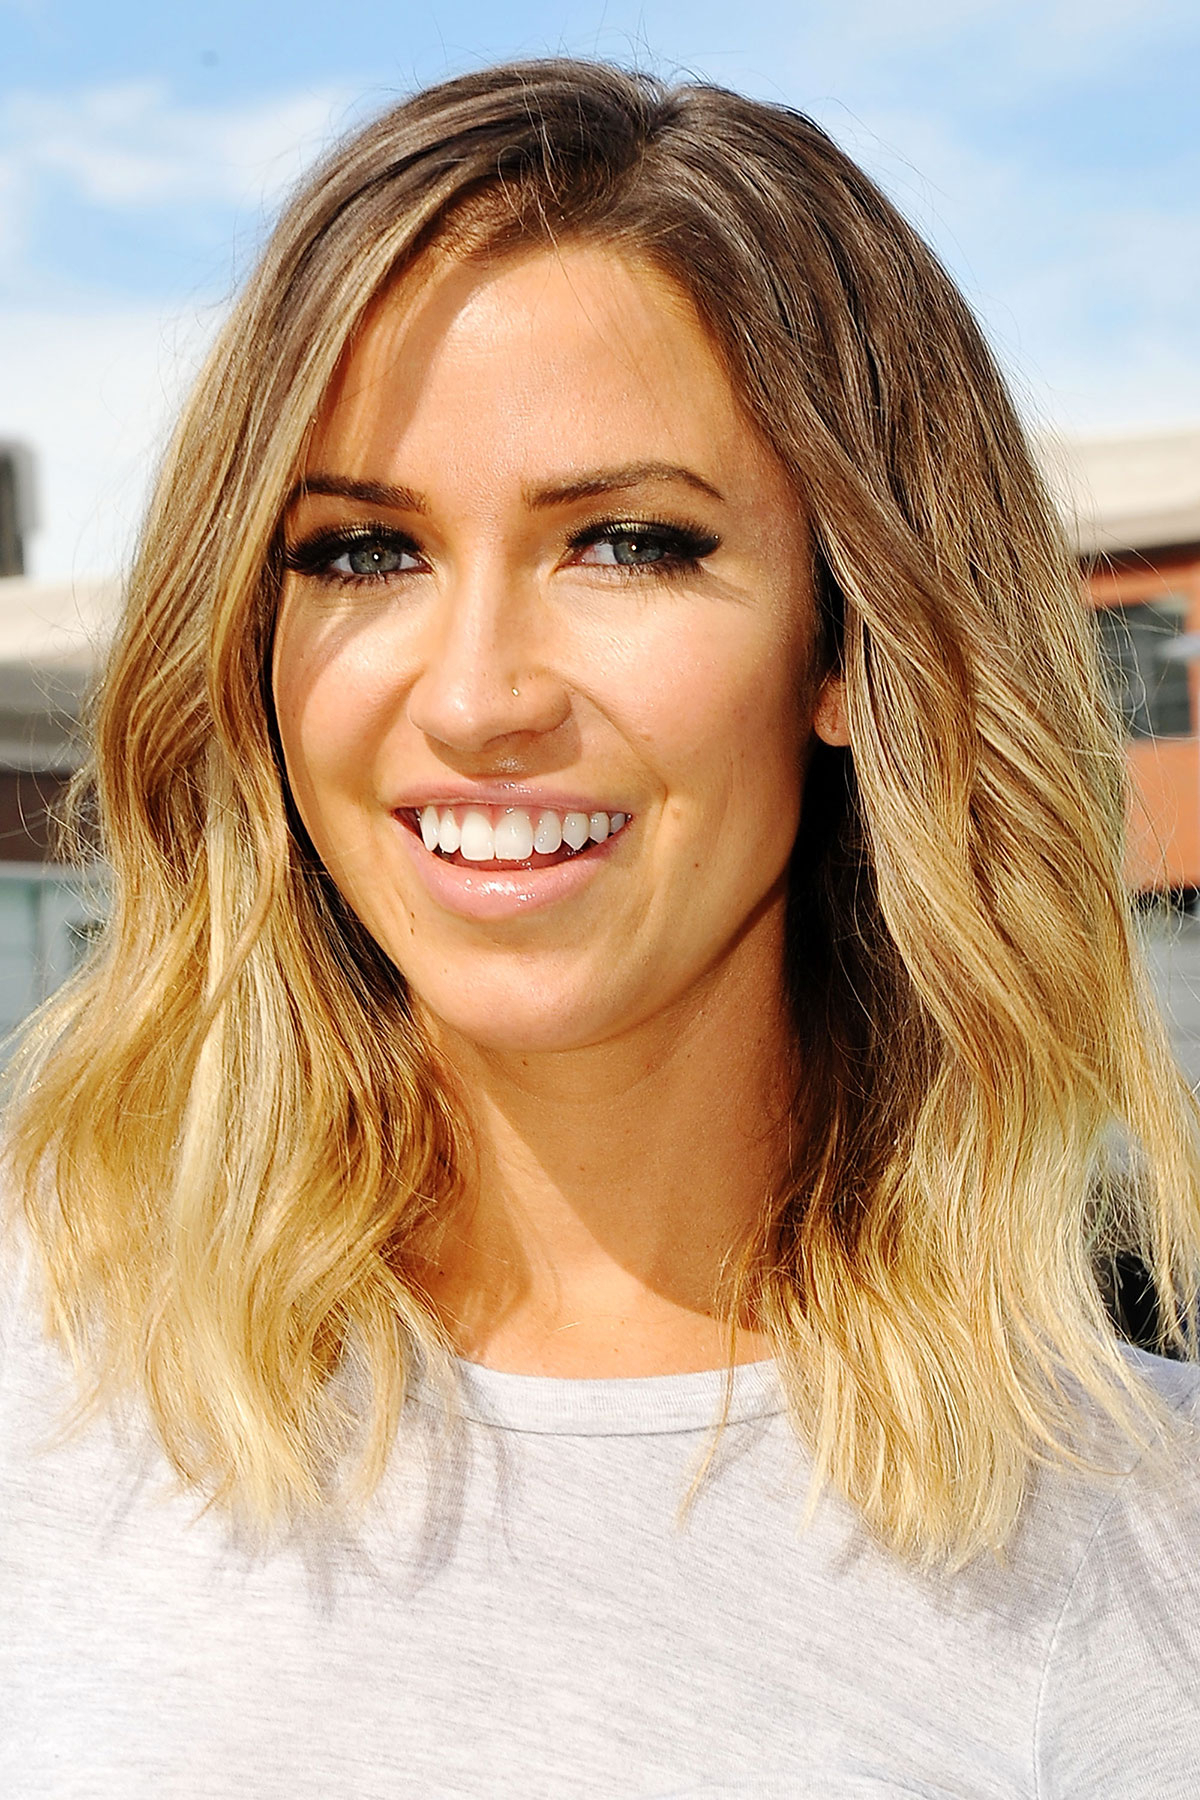 Kaitlyn Bristowe insists she was banned from taking part in 'DWTS' by 'Bachelor' boss Mike Fleiss